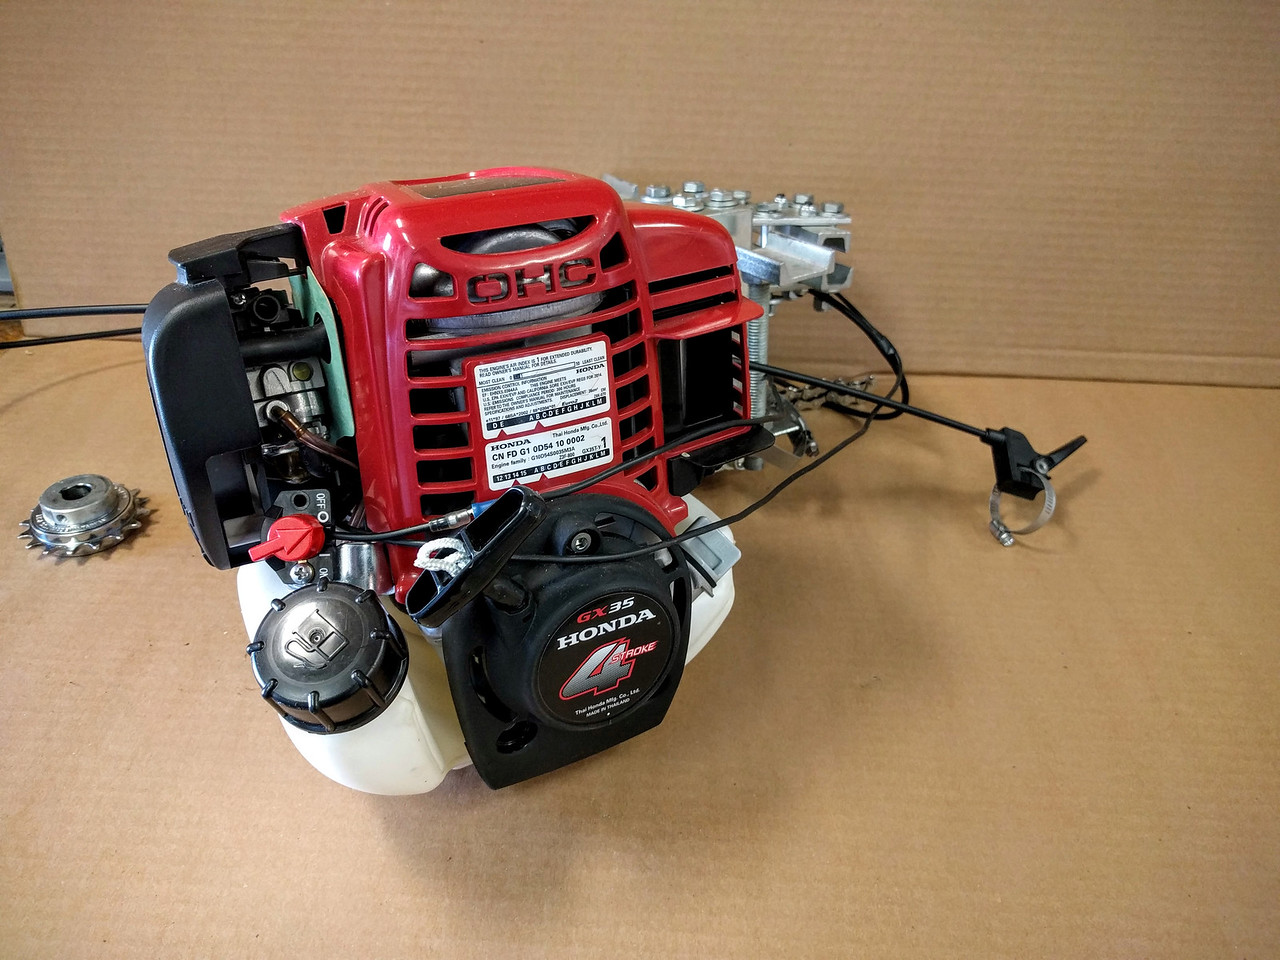 Staton Honda GX35 35 8 cc 1 60 HP Four Cycle Gear & Chain